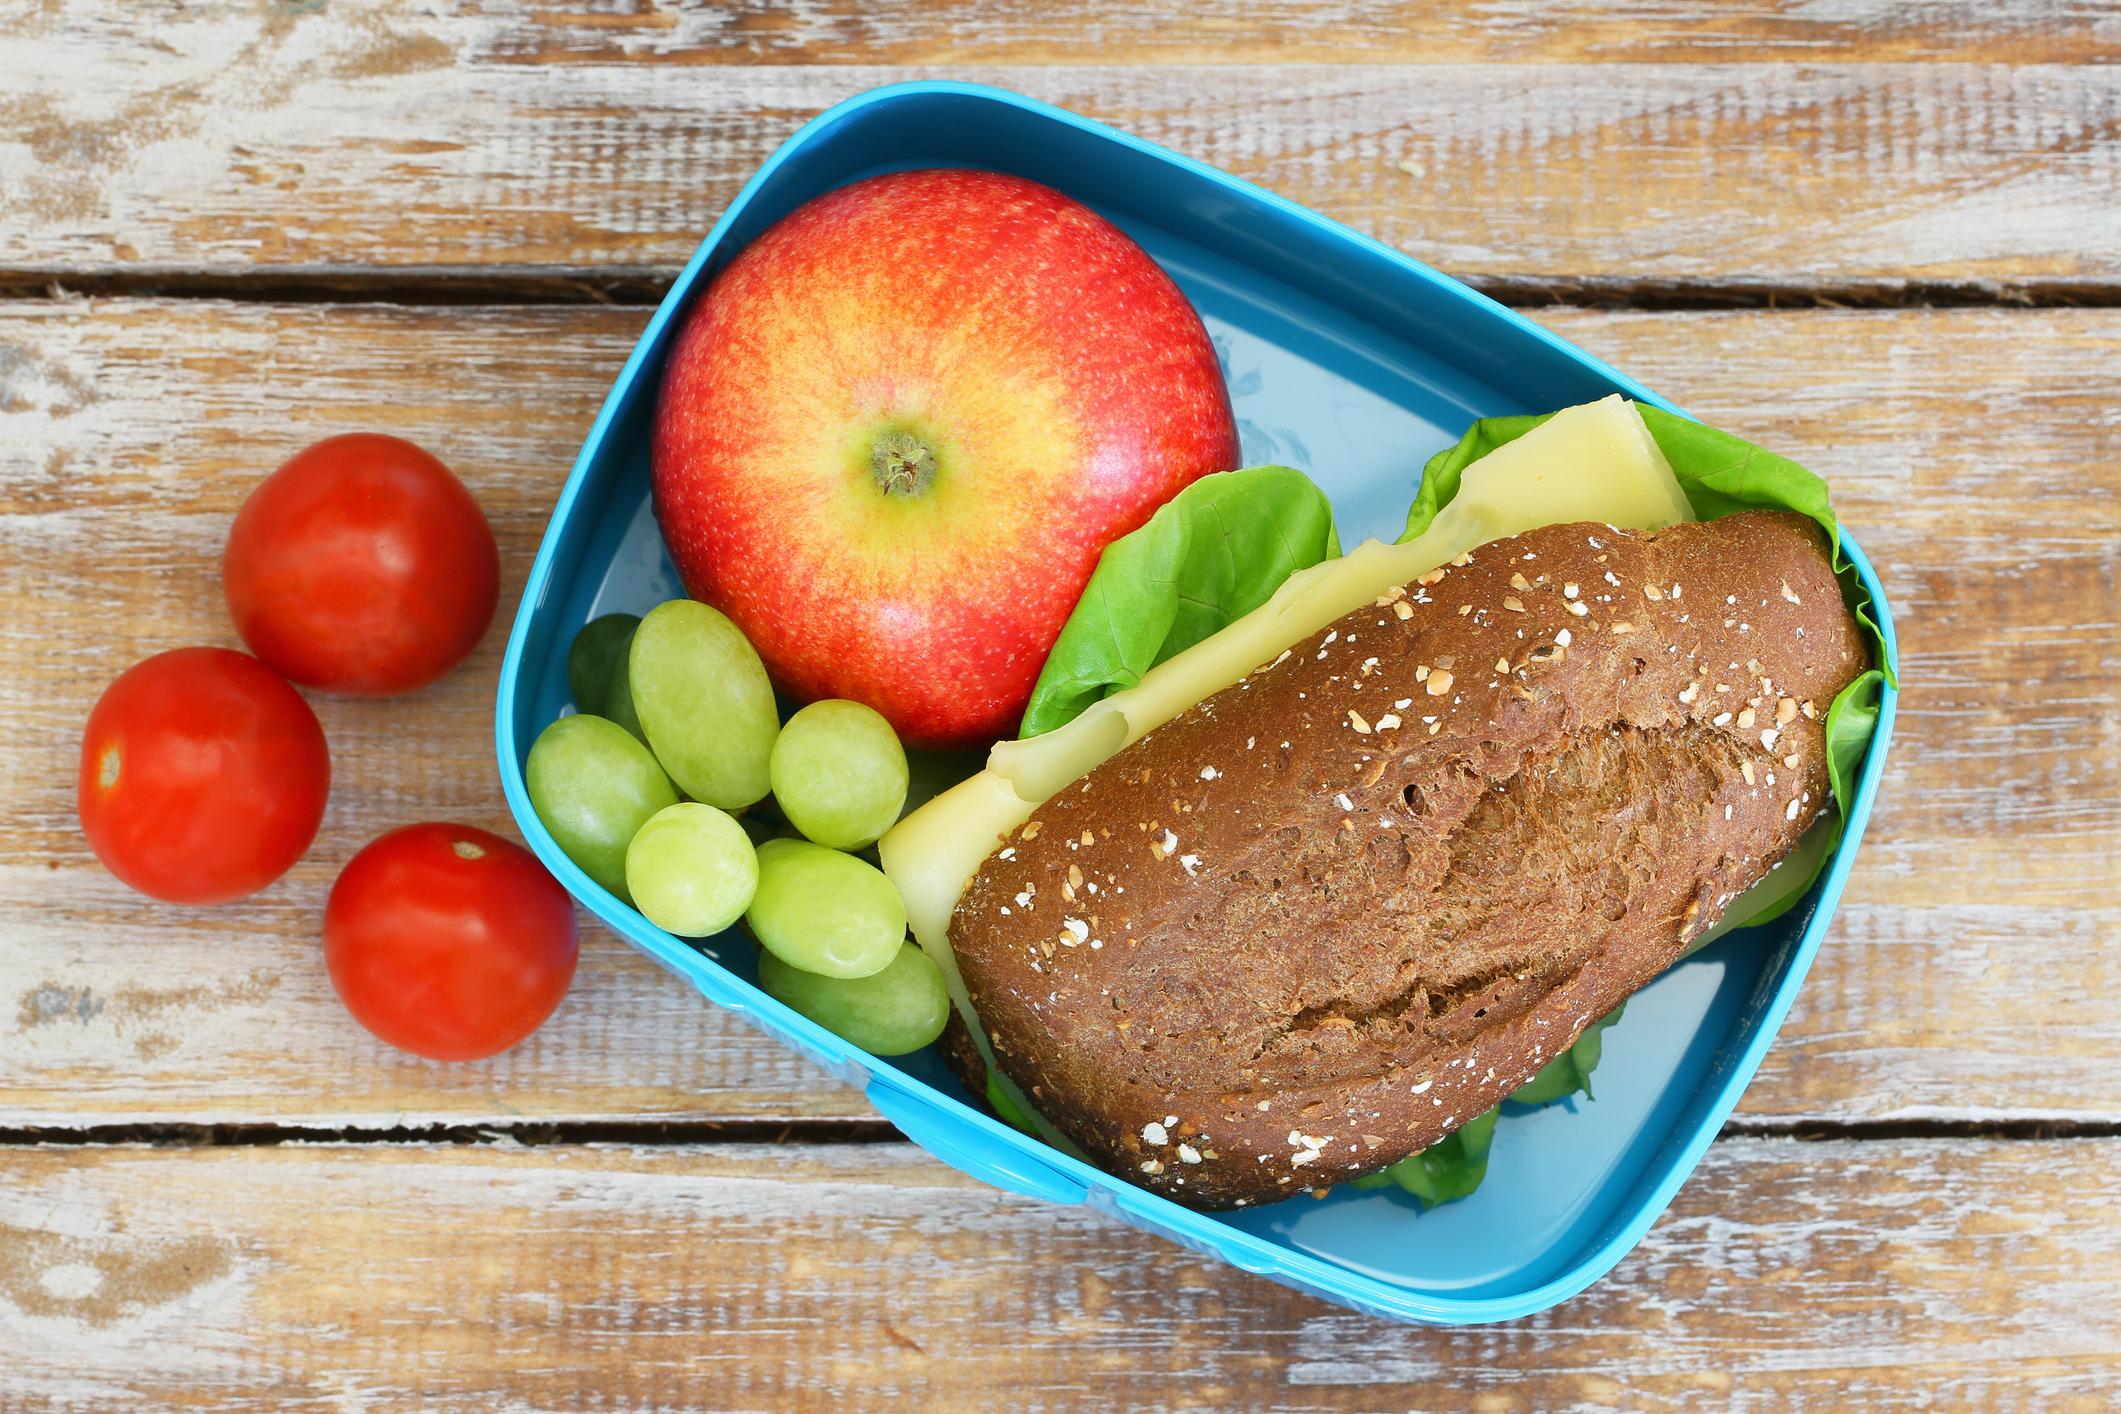 Lunch box consisting of wholegrain cheese sandwich, apple, grapes and cherry tomatoes